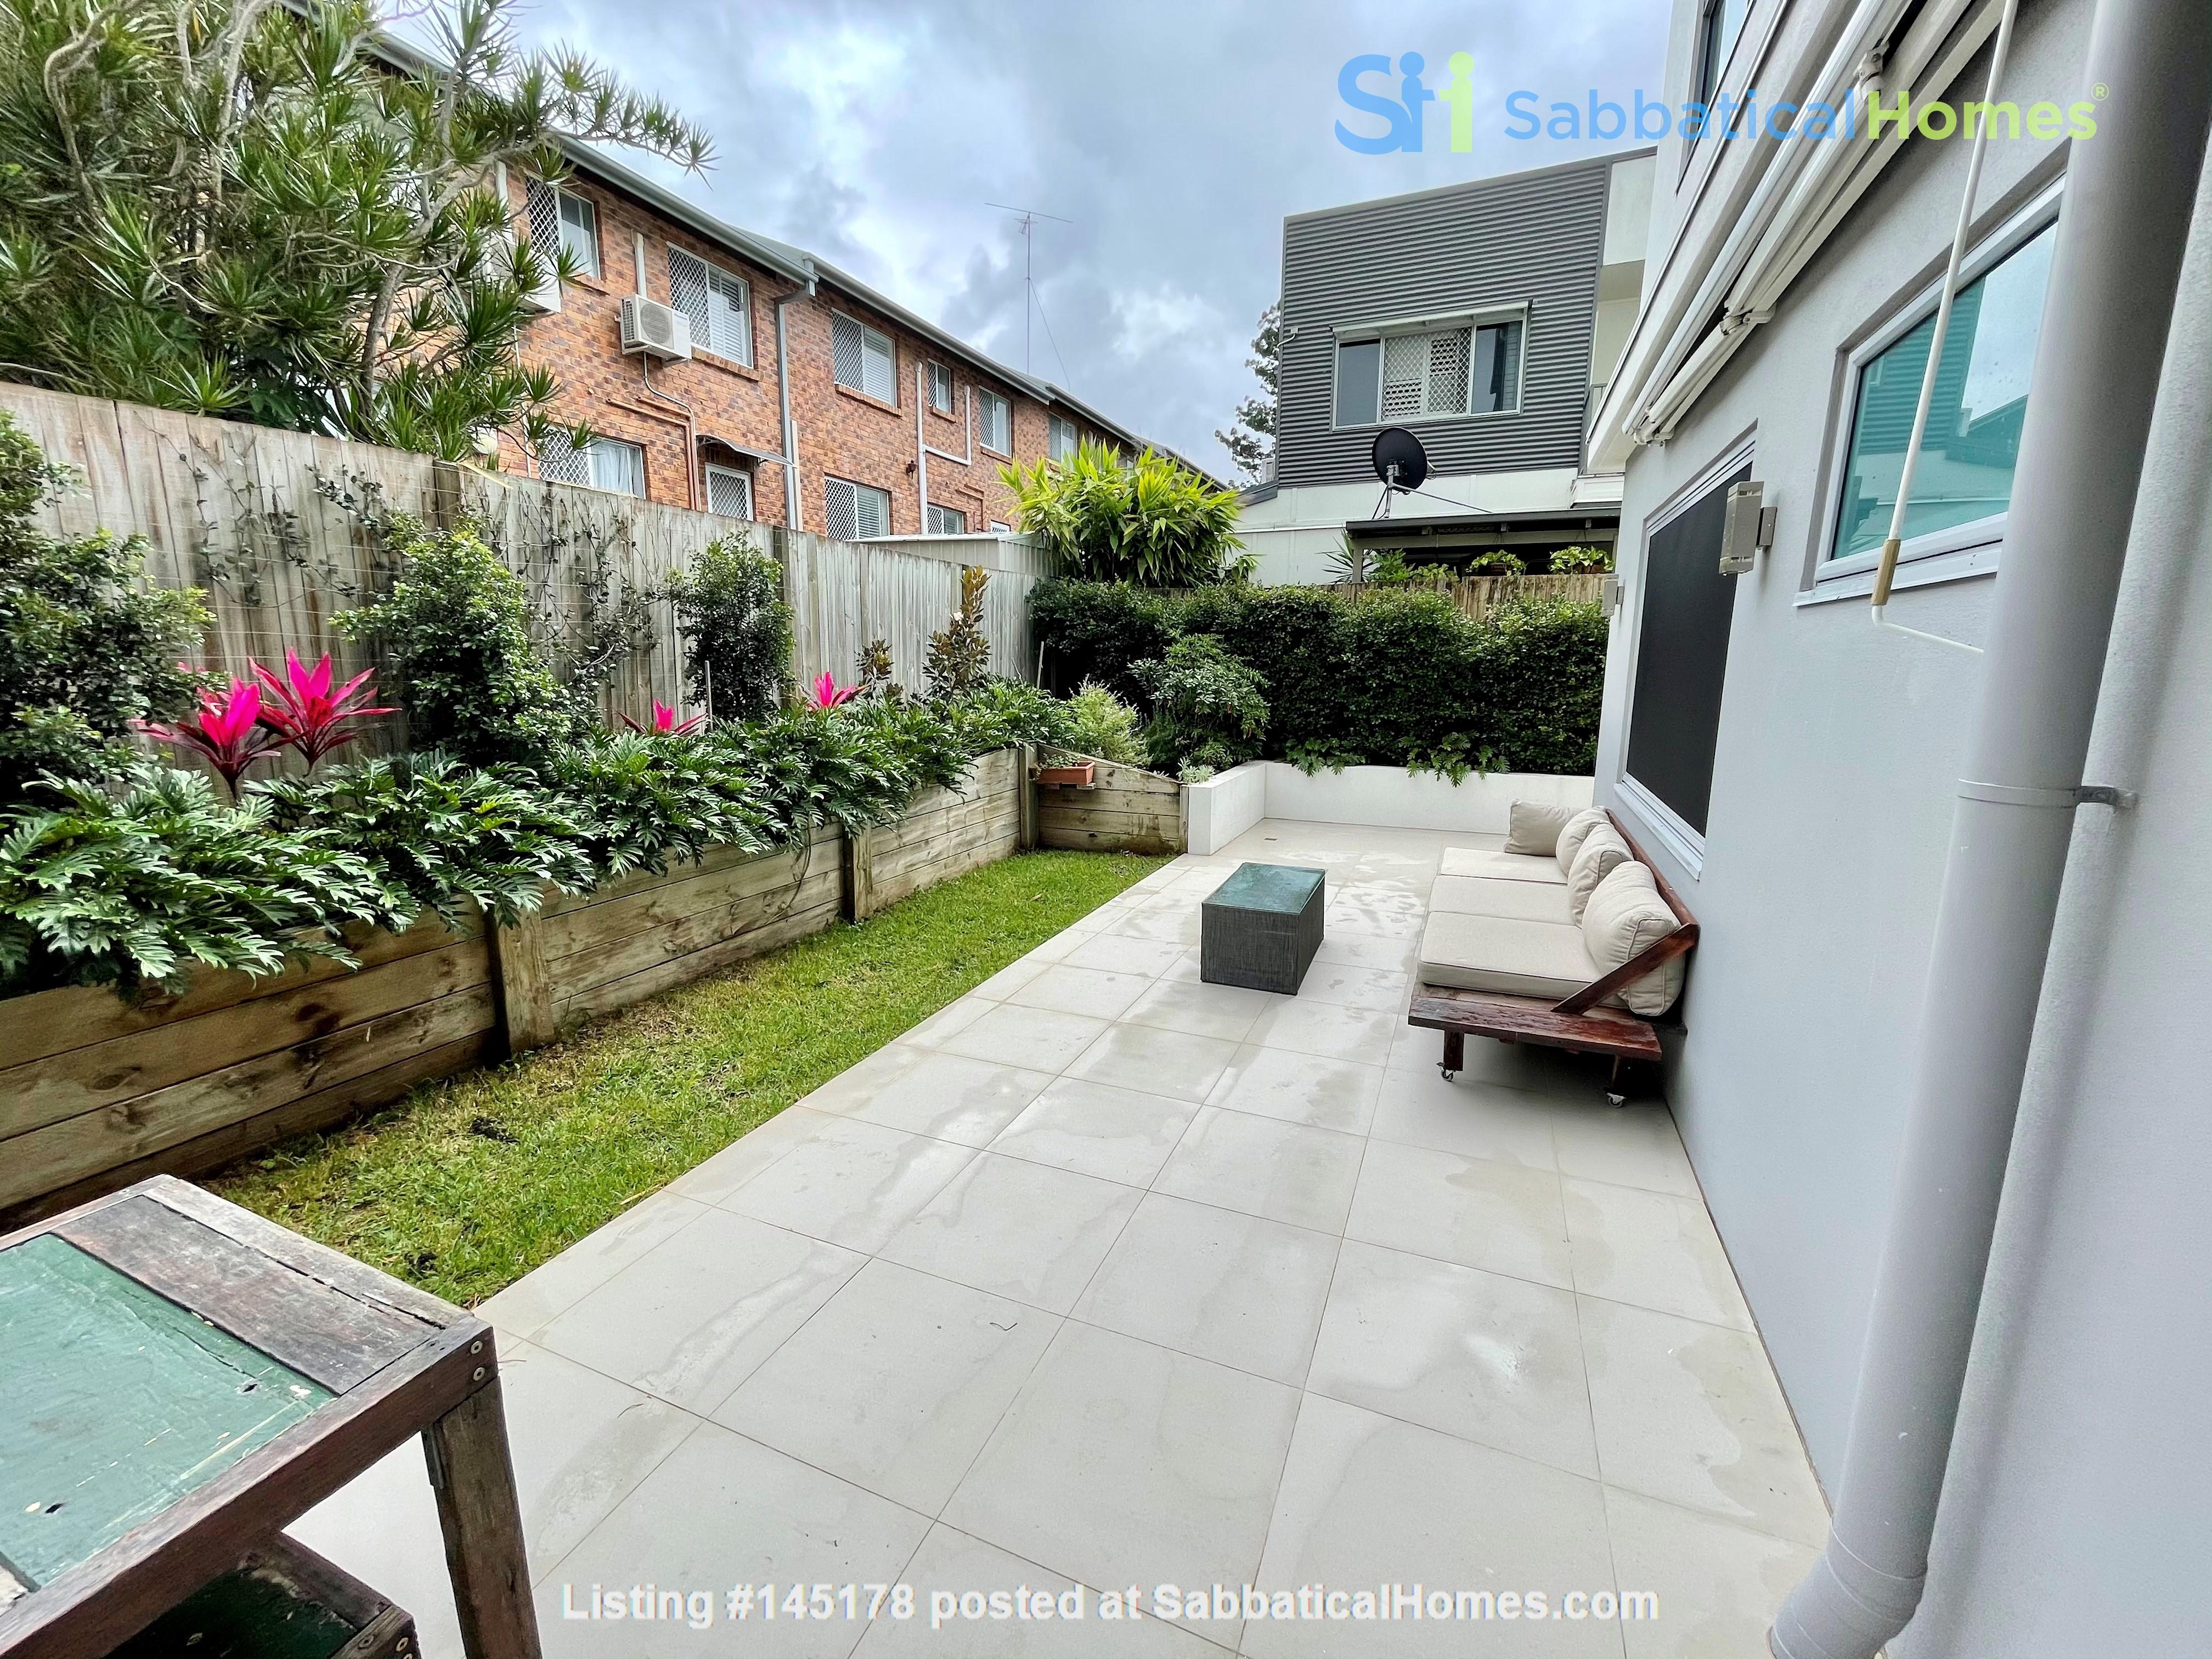 Lovely 2br apartment with large terrace/garden. 5km from Brisbane CBD Home Rental in Coorparoo, Queensland, Australia 6